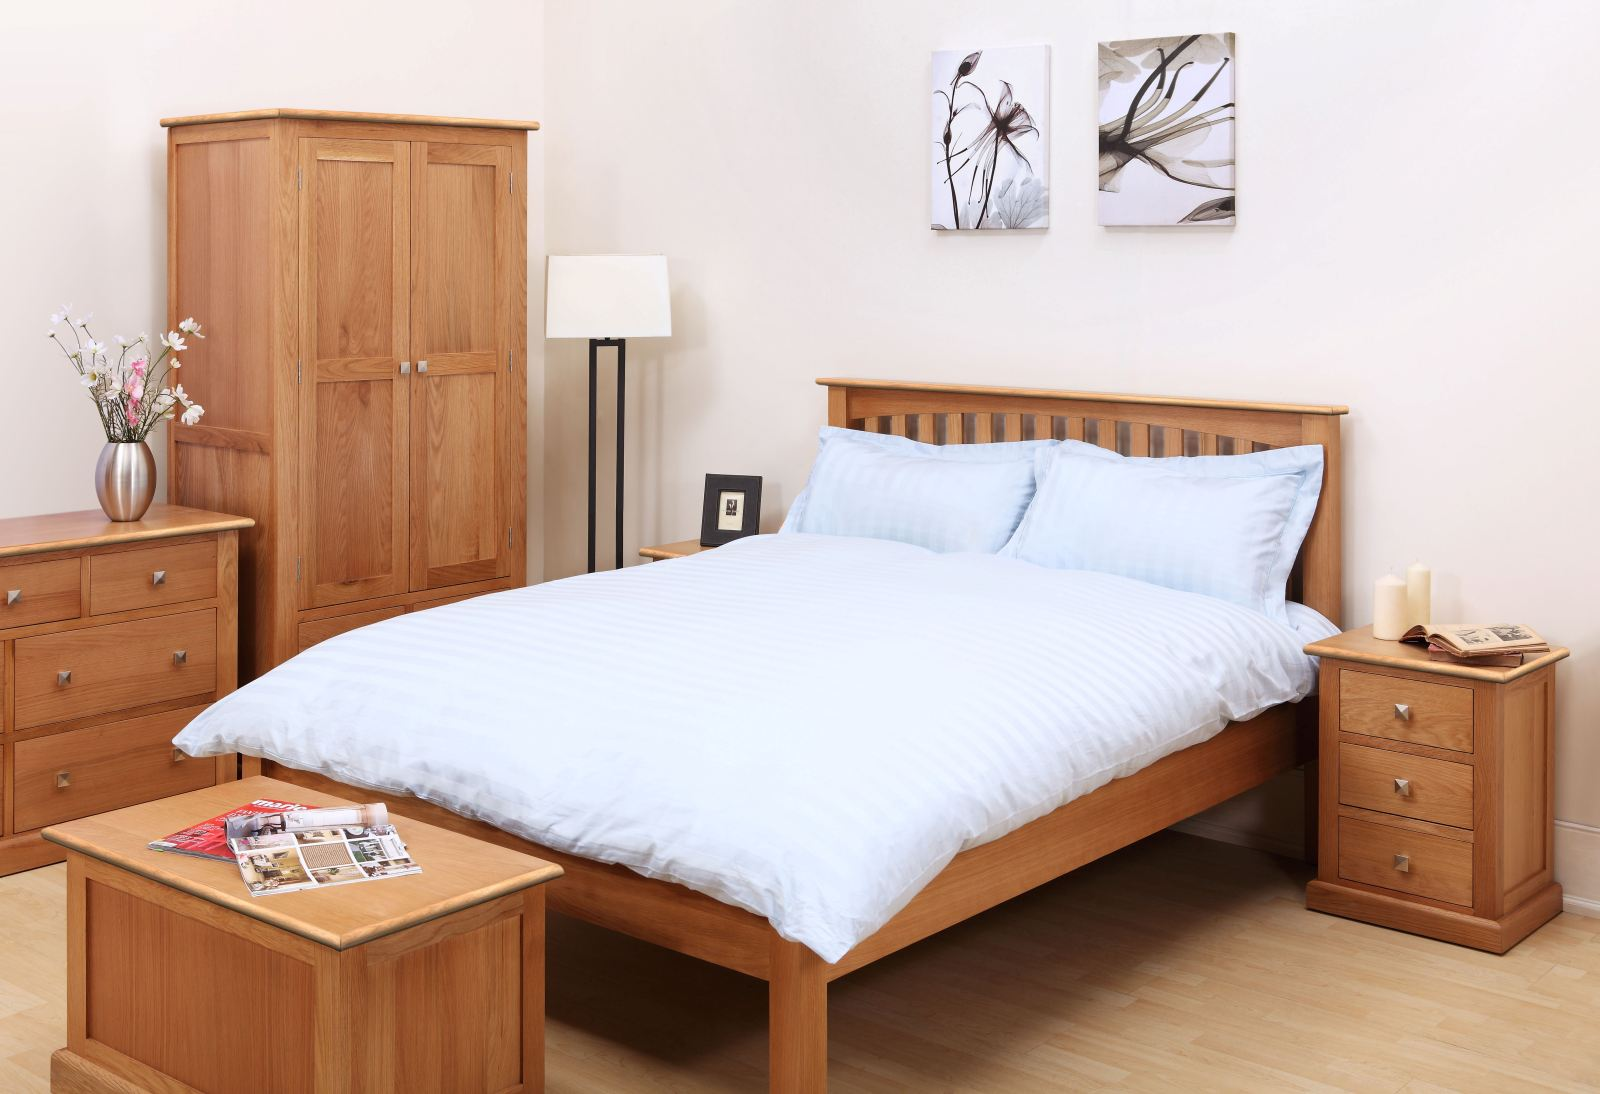 Medium Oak Bedroom Furniture Contemporary Oak Bedroom Furniture Contemporary Bedroom Furniture